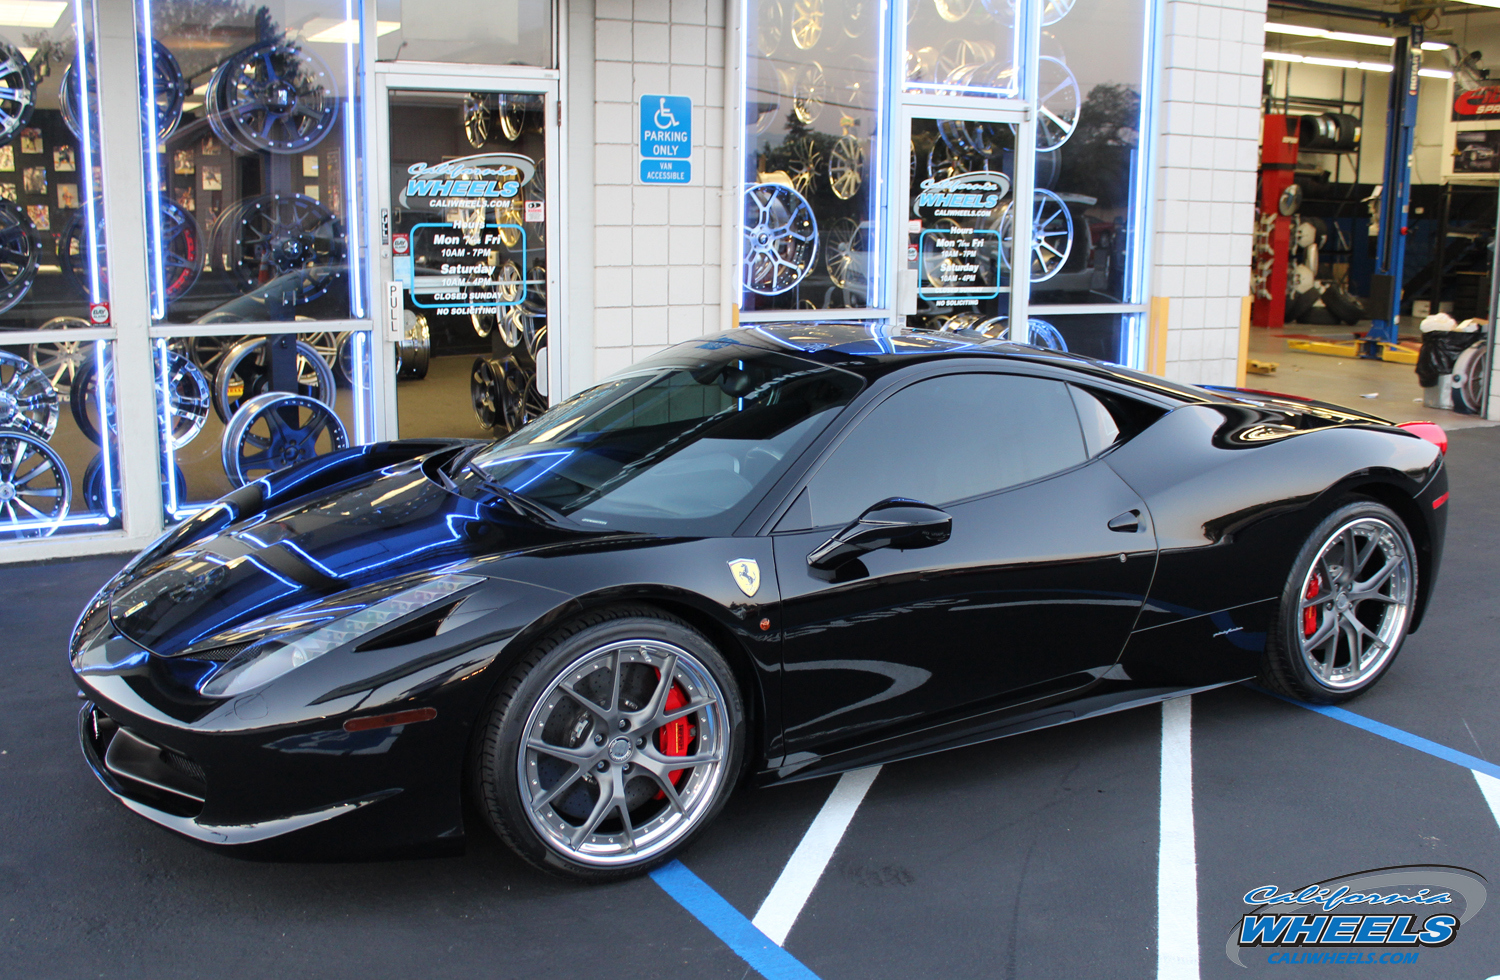 Fuel Wheels 20x9 >> Car | Ferrari 458 on HRE S101 Wheels | California Wheels